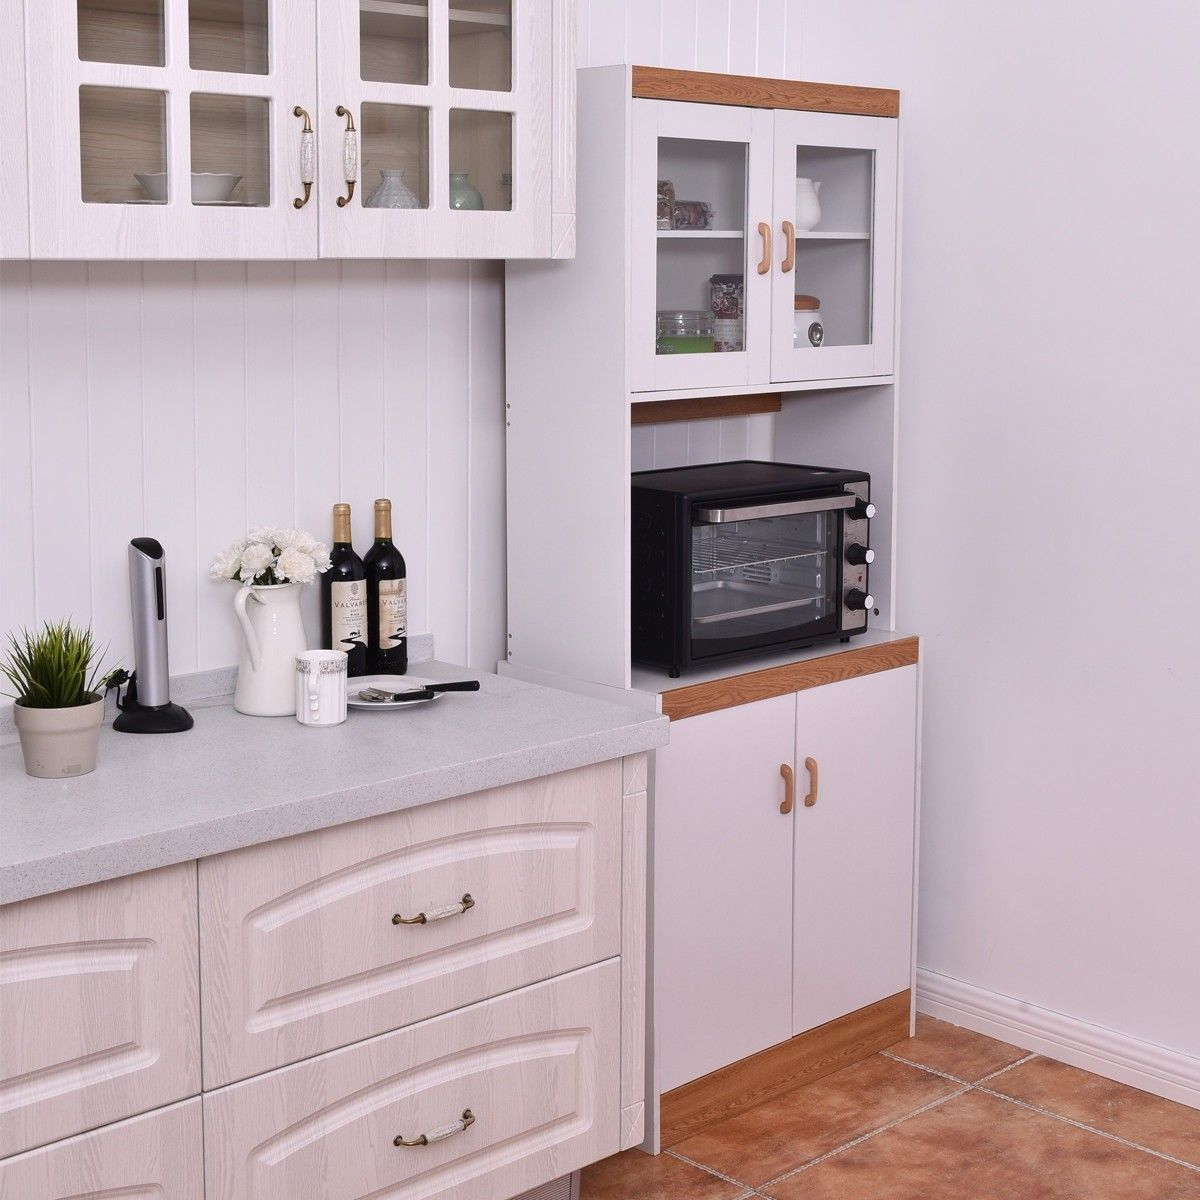 tall shelves microwave cart stand kitchen storage cabinet kitchen cabinet storage kitchen on kitchen organization microwave id=98470